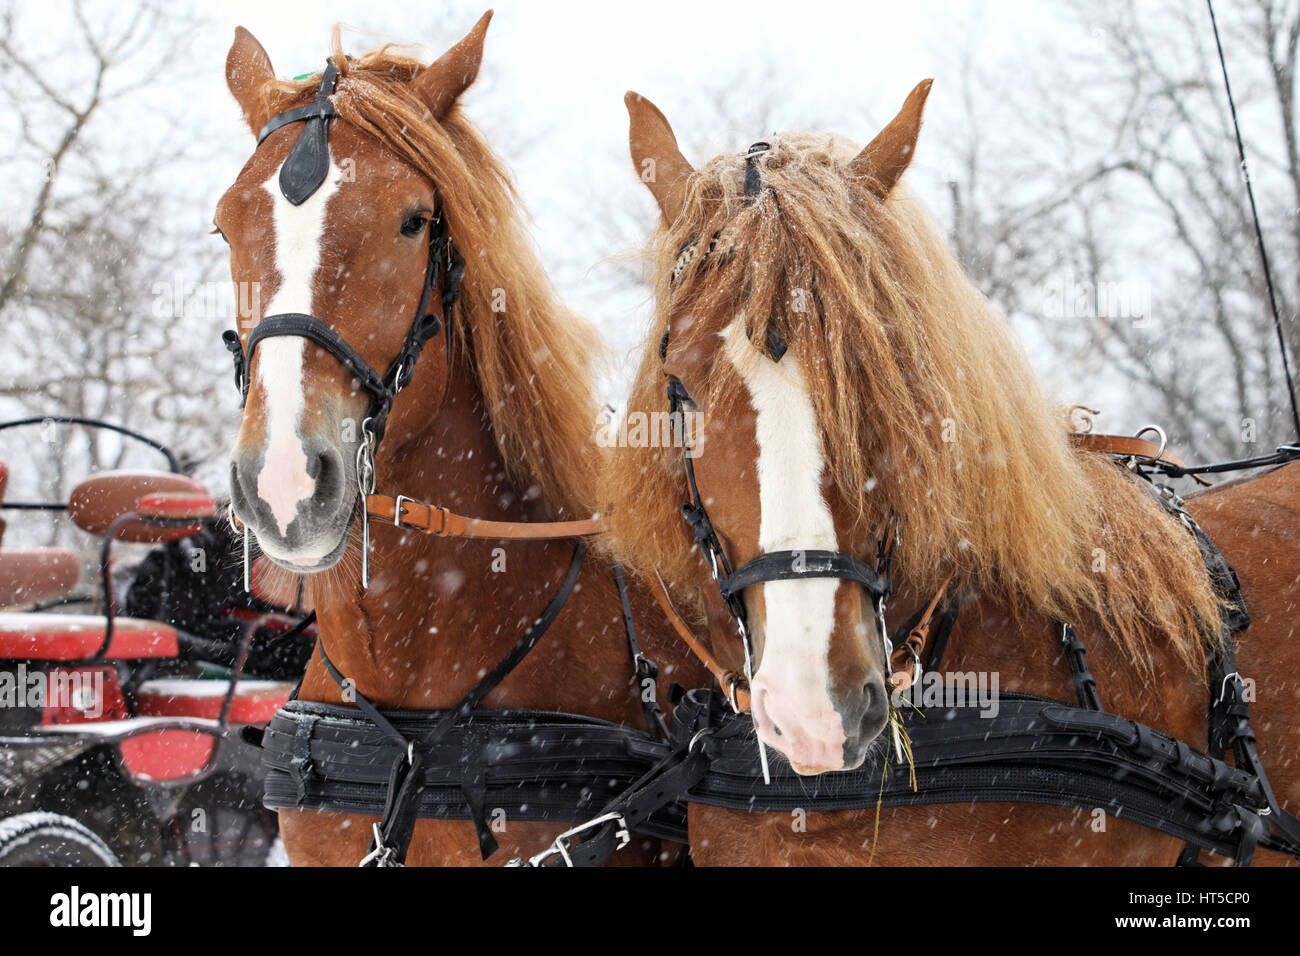 Clydesdale Horse Team High Resolution Stock Photography And Images Alamy